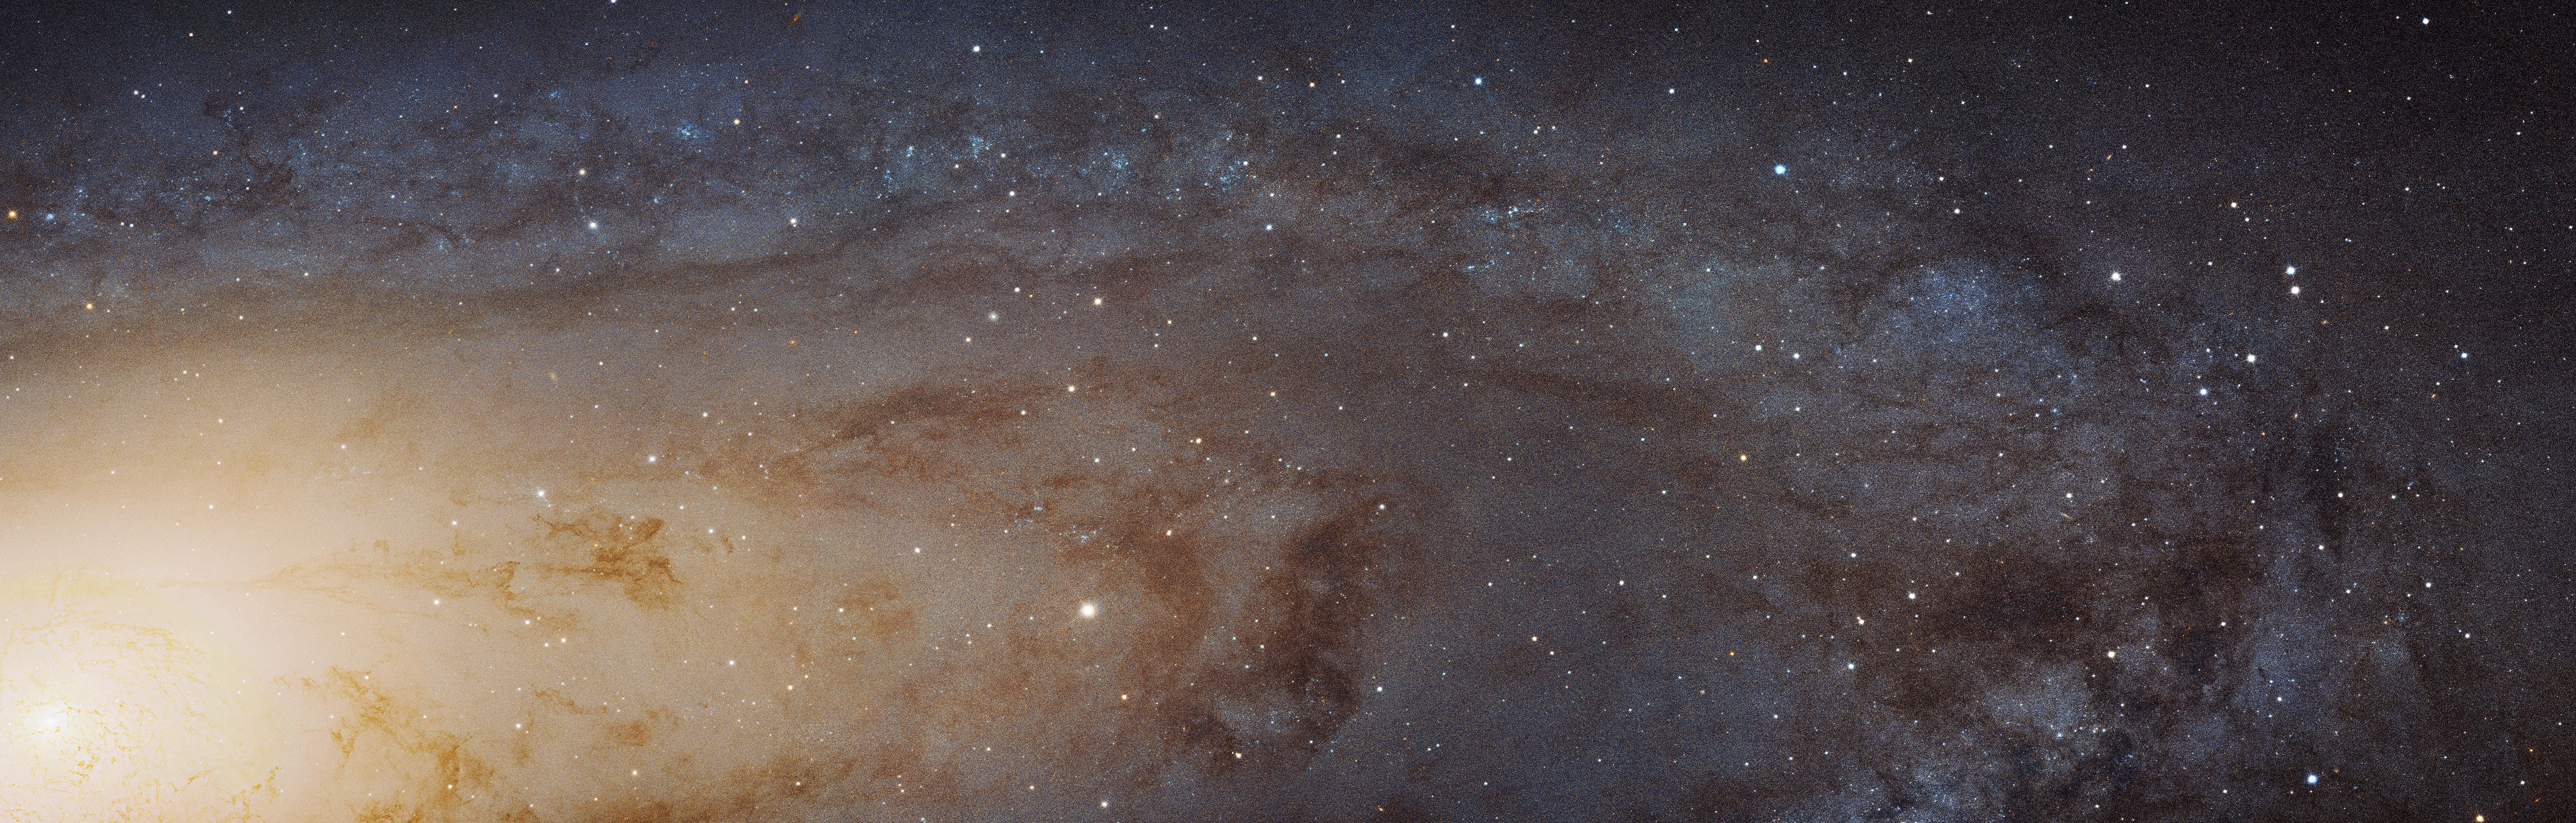 Stunning Andromeda galaxy photo clearly shows over 100 million stars